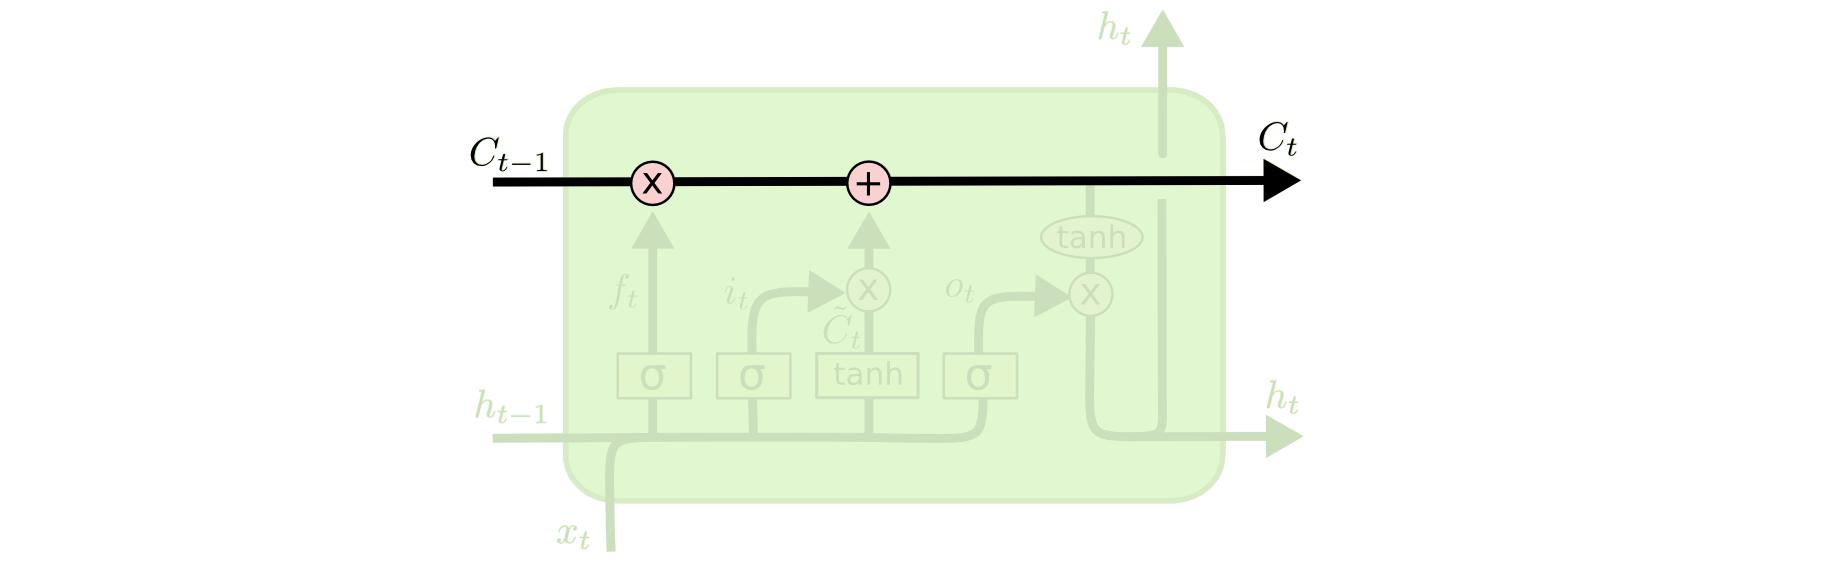 http://colah.github.io/posts/2015-08-Understanding-LSTMs/img/LSTM3-C-line.png